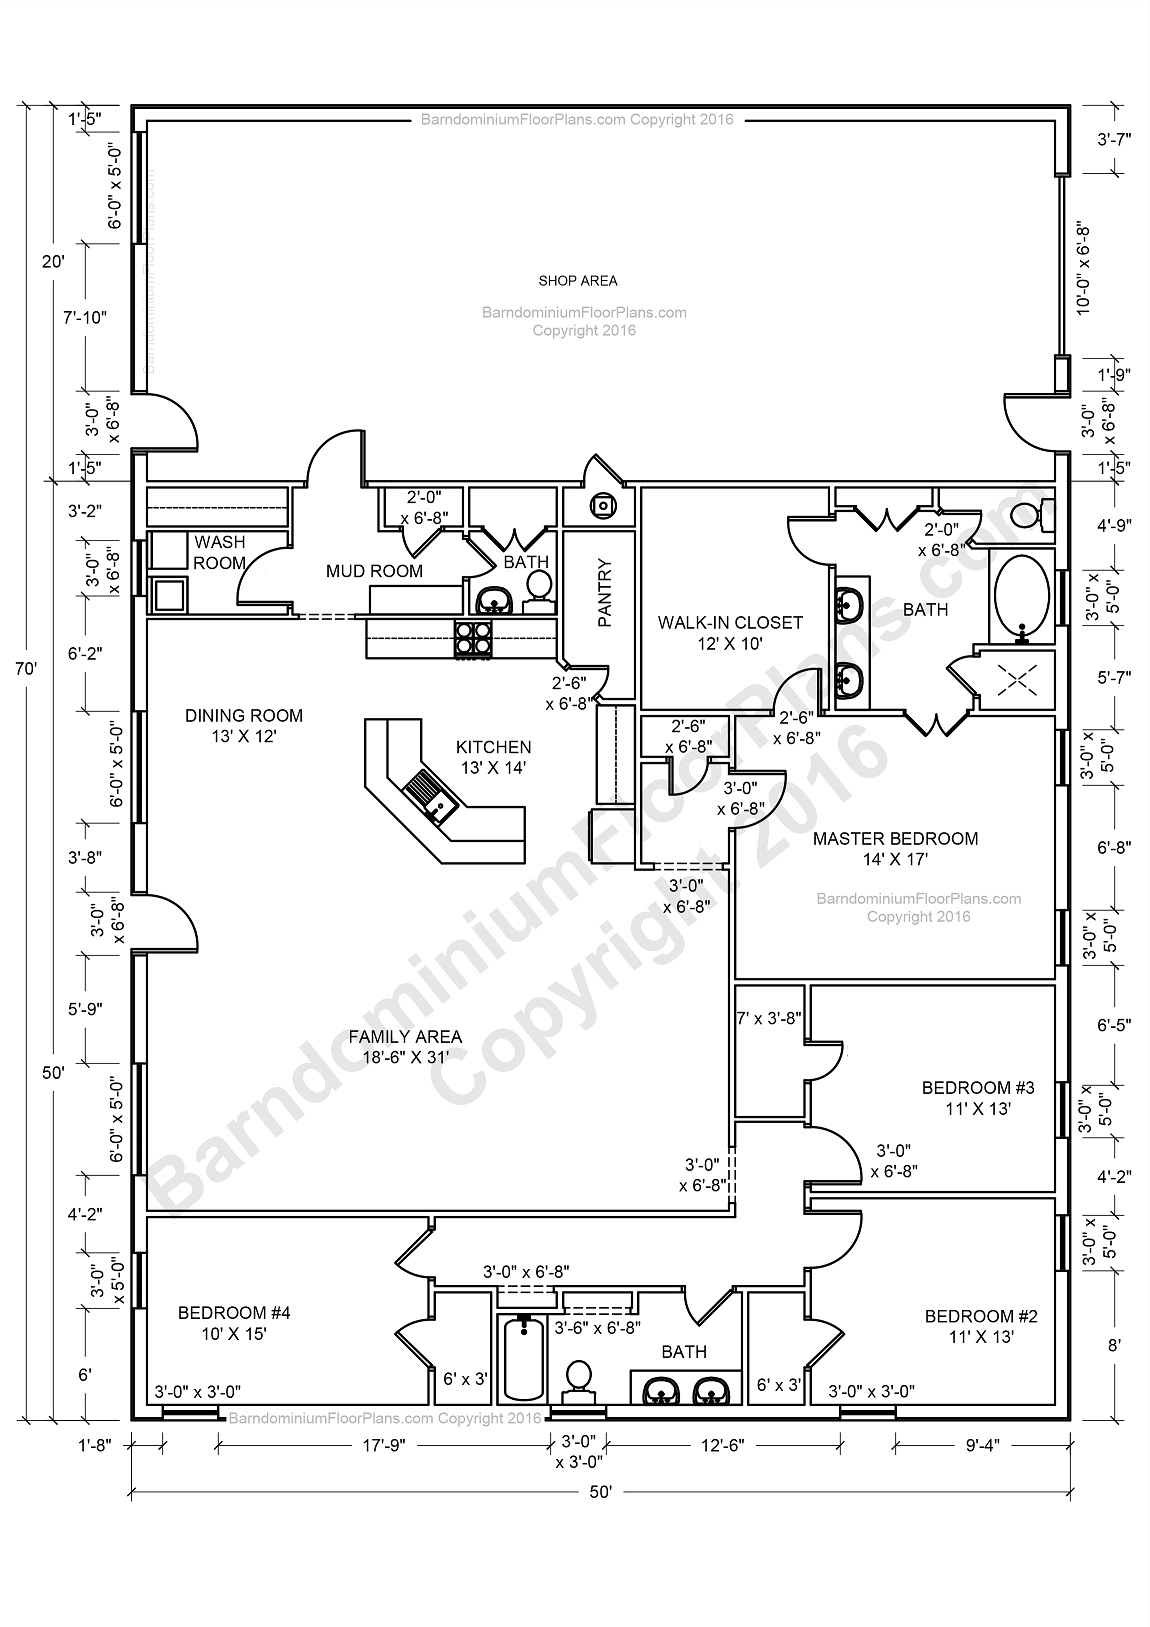 barndominium floor plans barndominium floor plans 1 800 691 barndominium floor plans pole barn house plans and metal barn homes